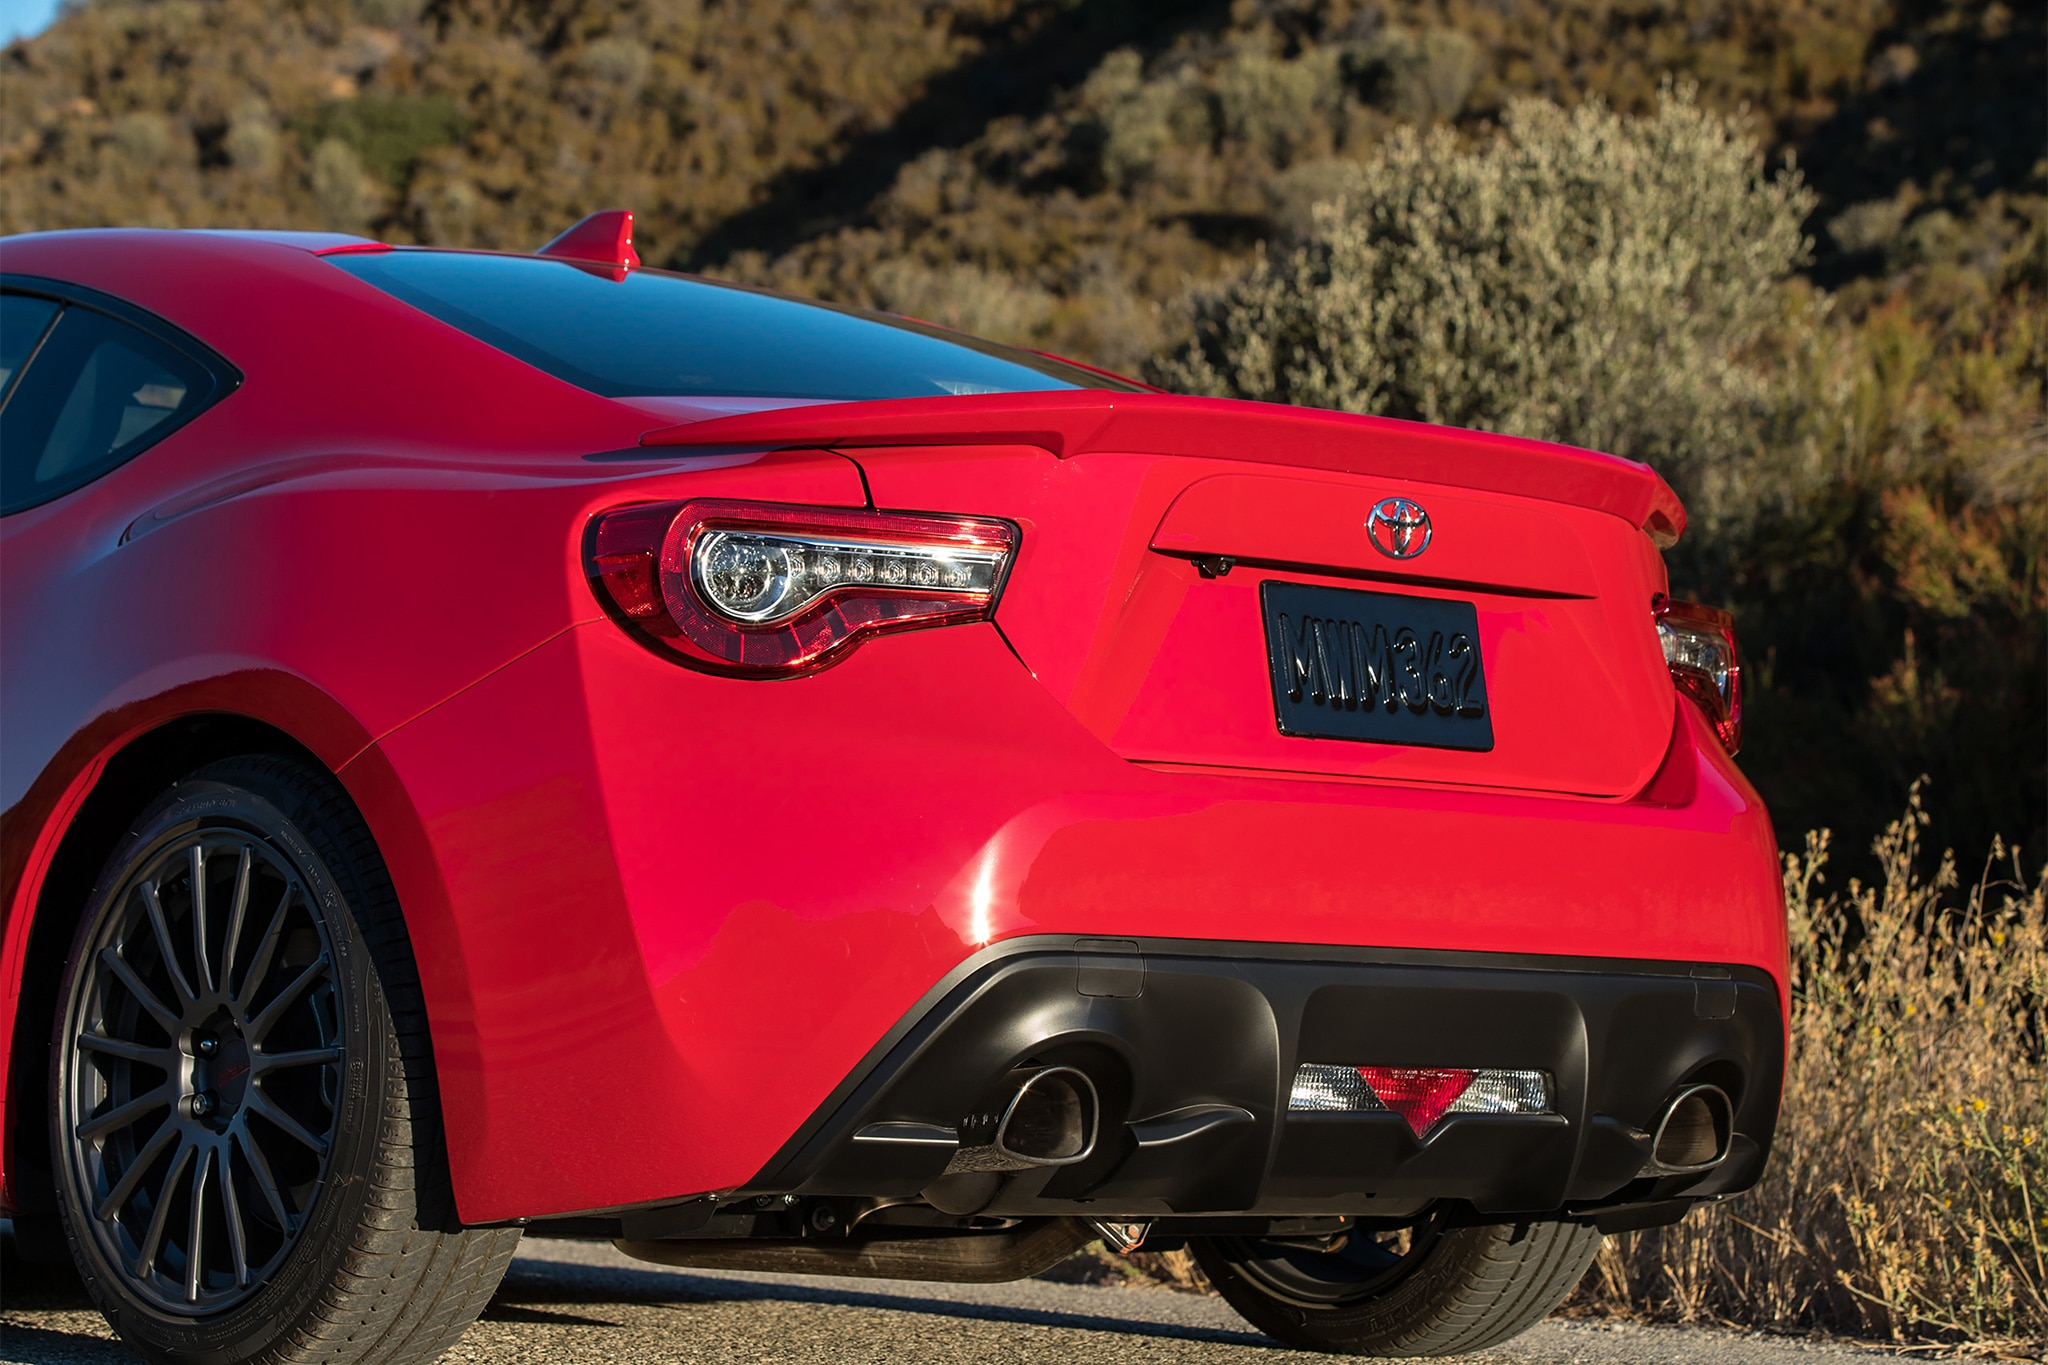 2017 Toyota 86 rear end